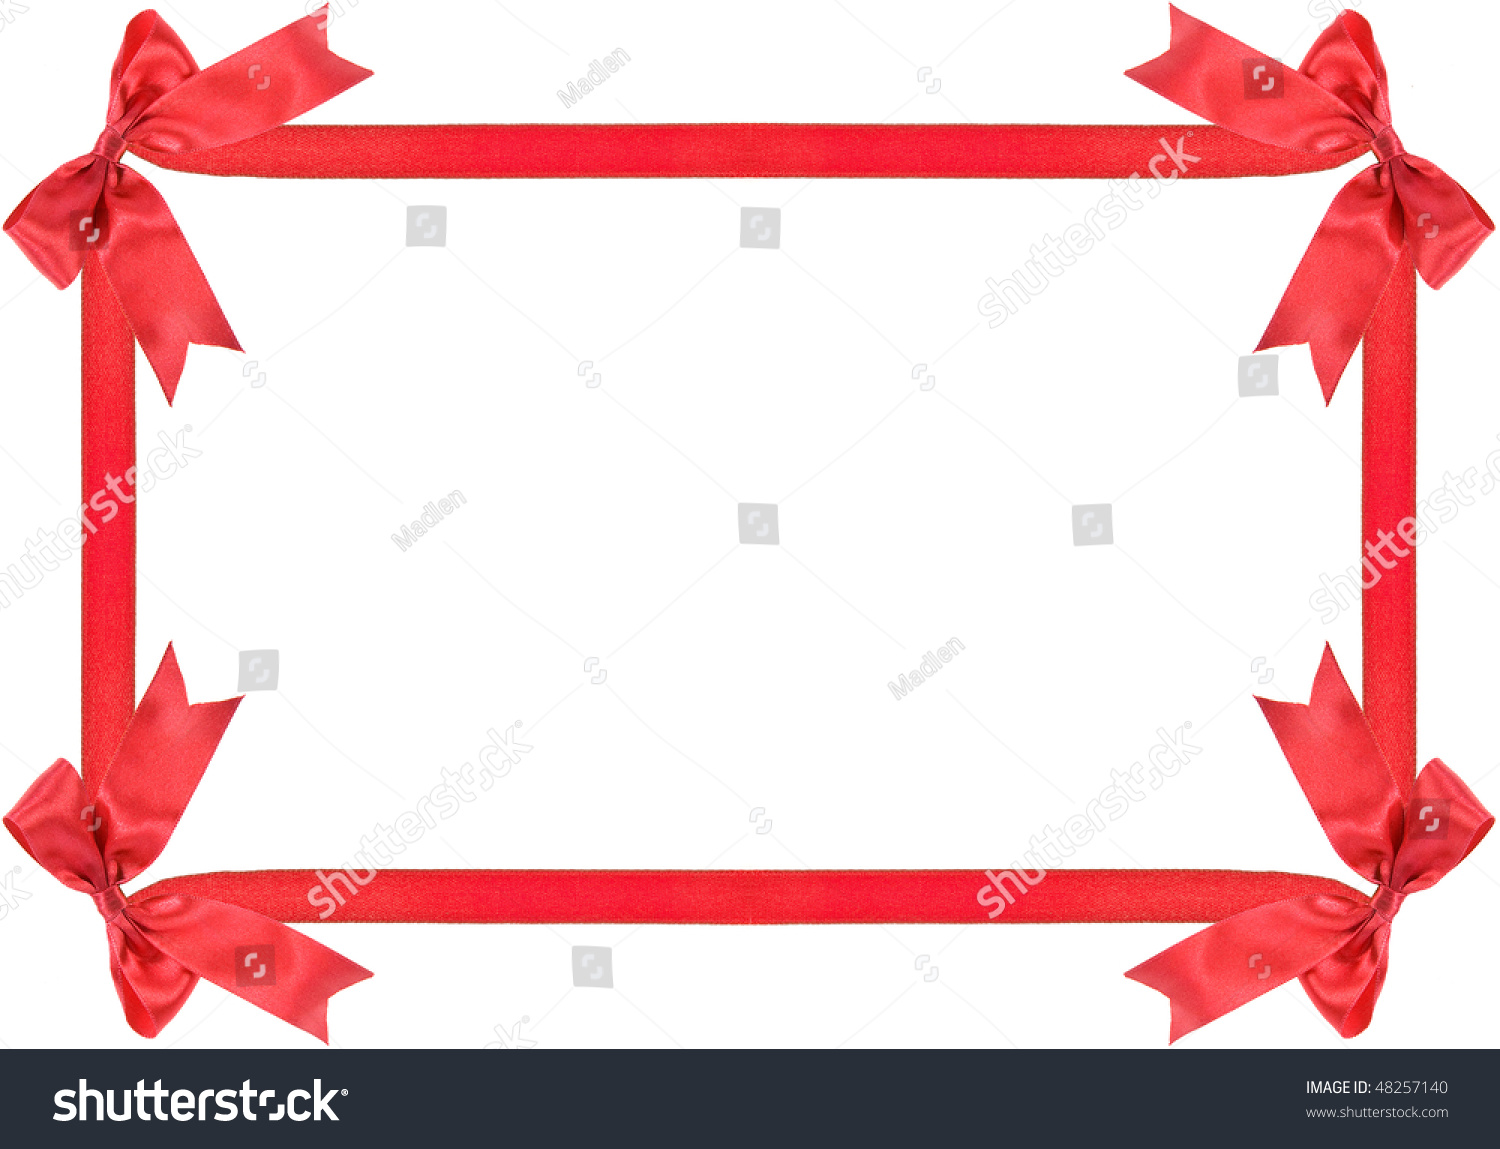 Red gift bows border with clipping path for easy background removing - Red Ribbon Bow Frame With Copy Space For Your Text